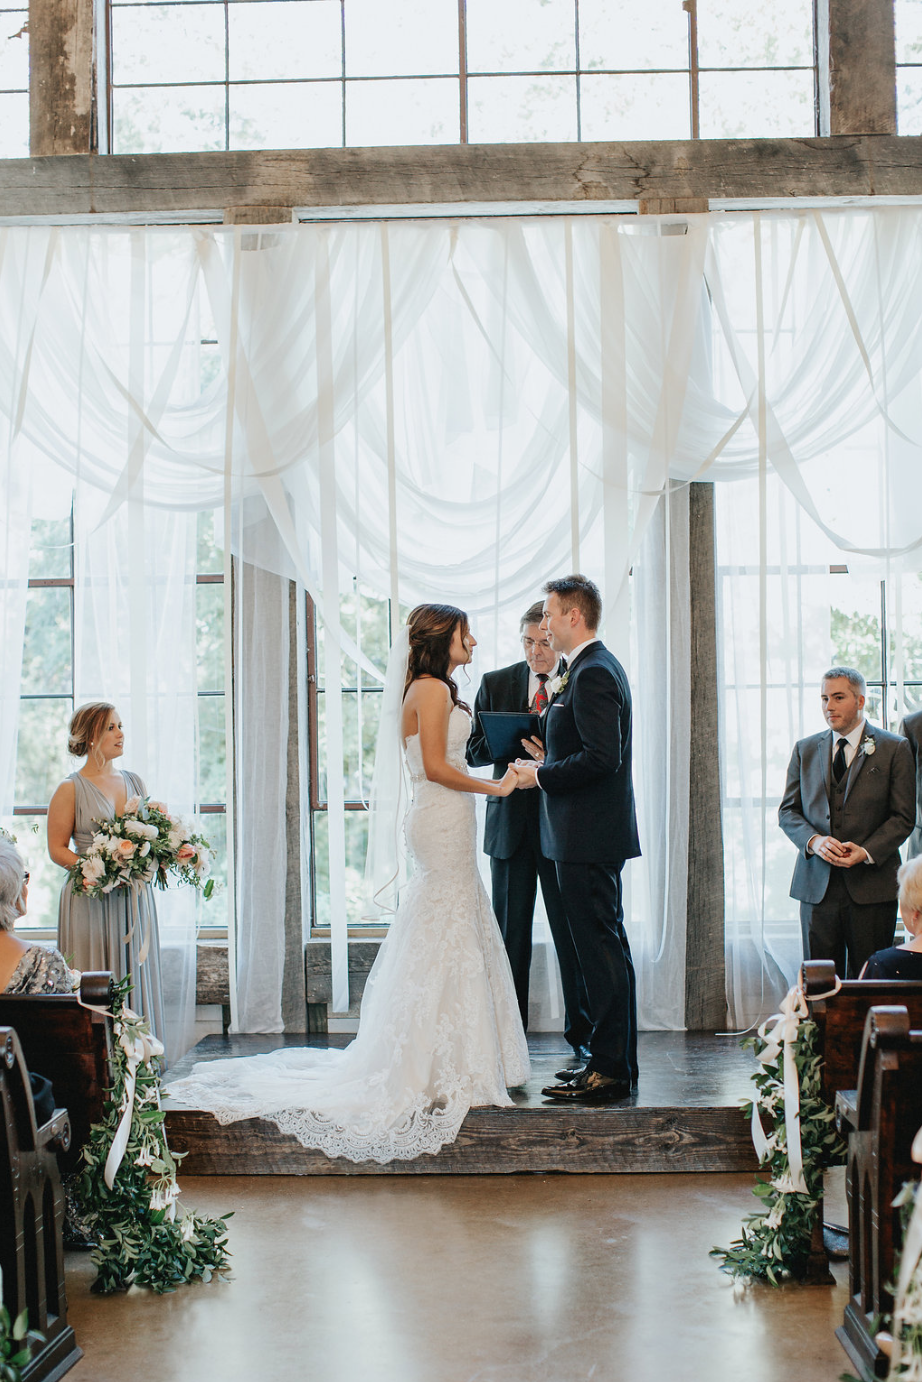 Exchanging Vows during the ceremony- all florals by Maxit Flower Design